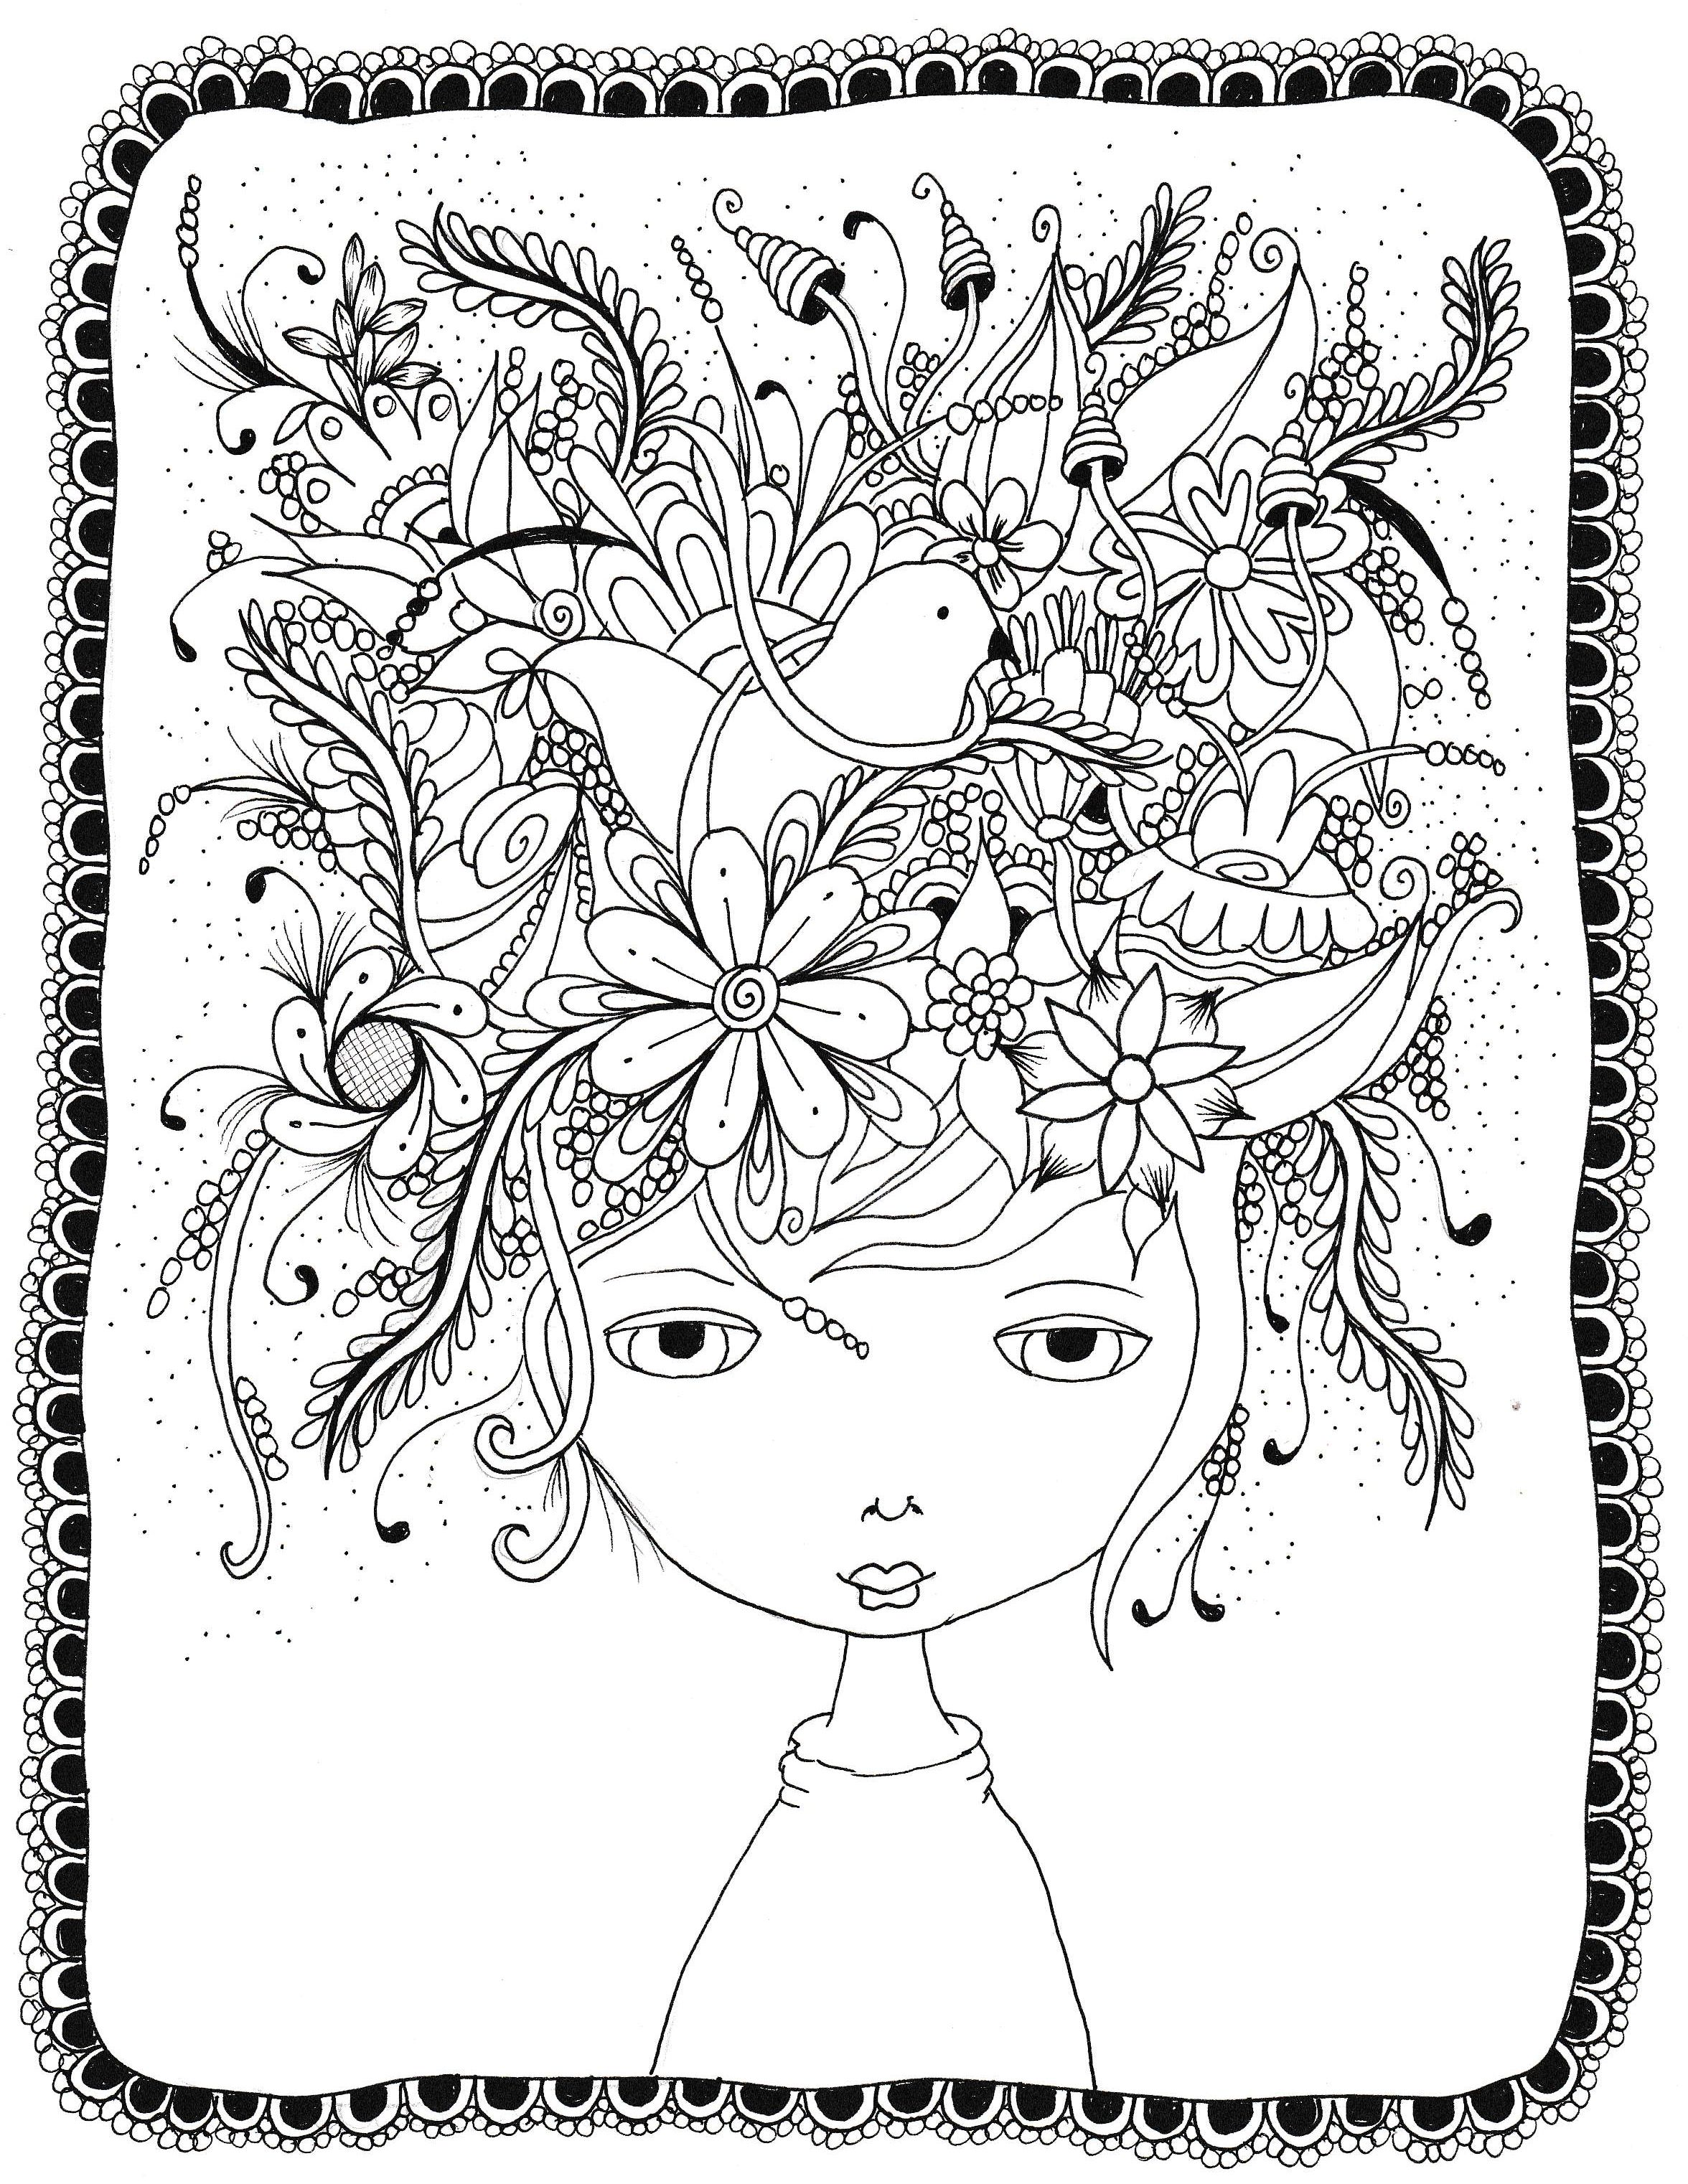 Crazy hair day doodle free coloring page for adults | Pages to Color ...